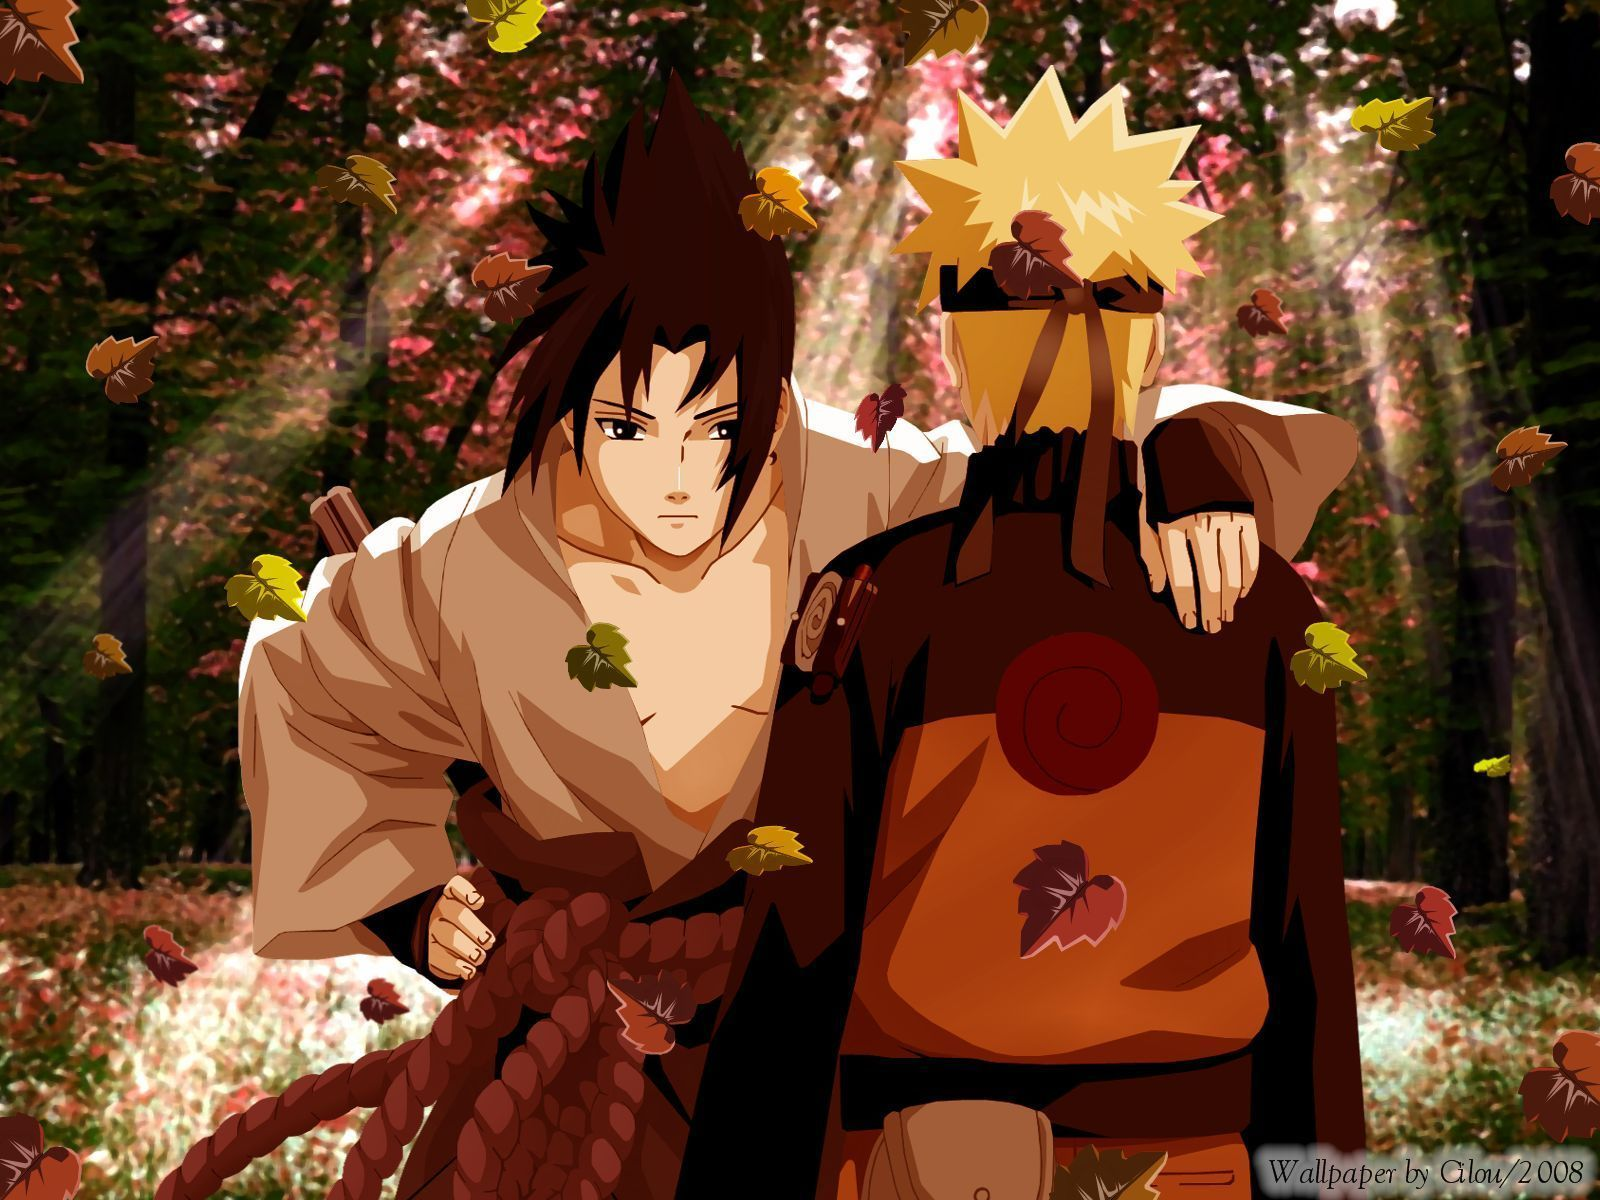 Best Download wallpaper naruto ideas on Pinterest Wallpaper